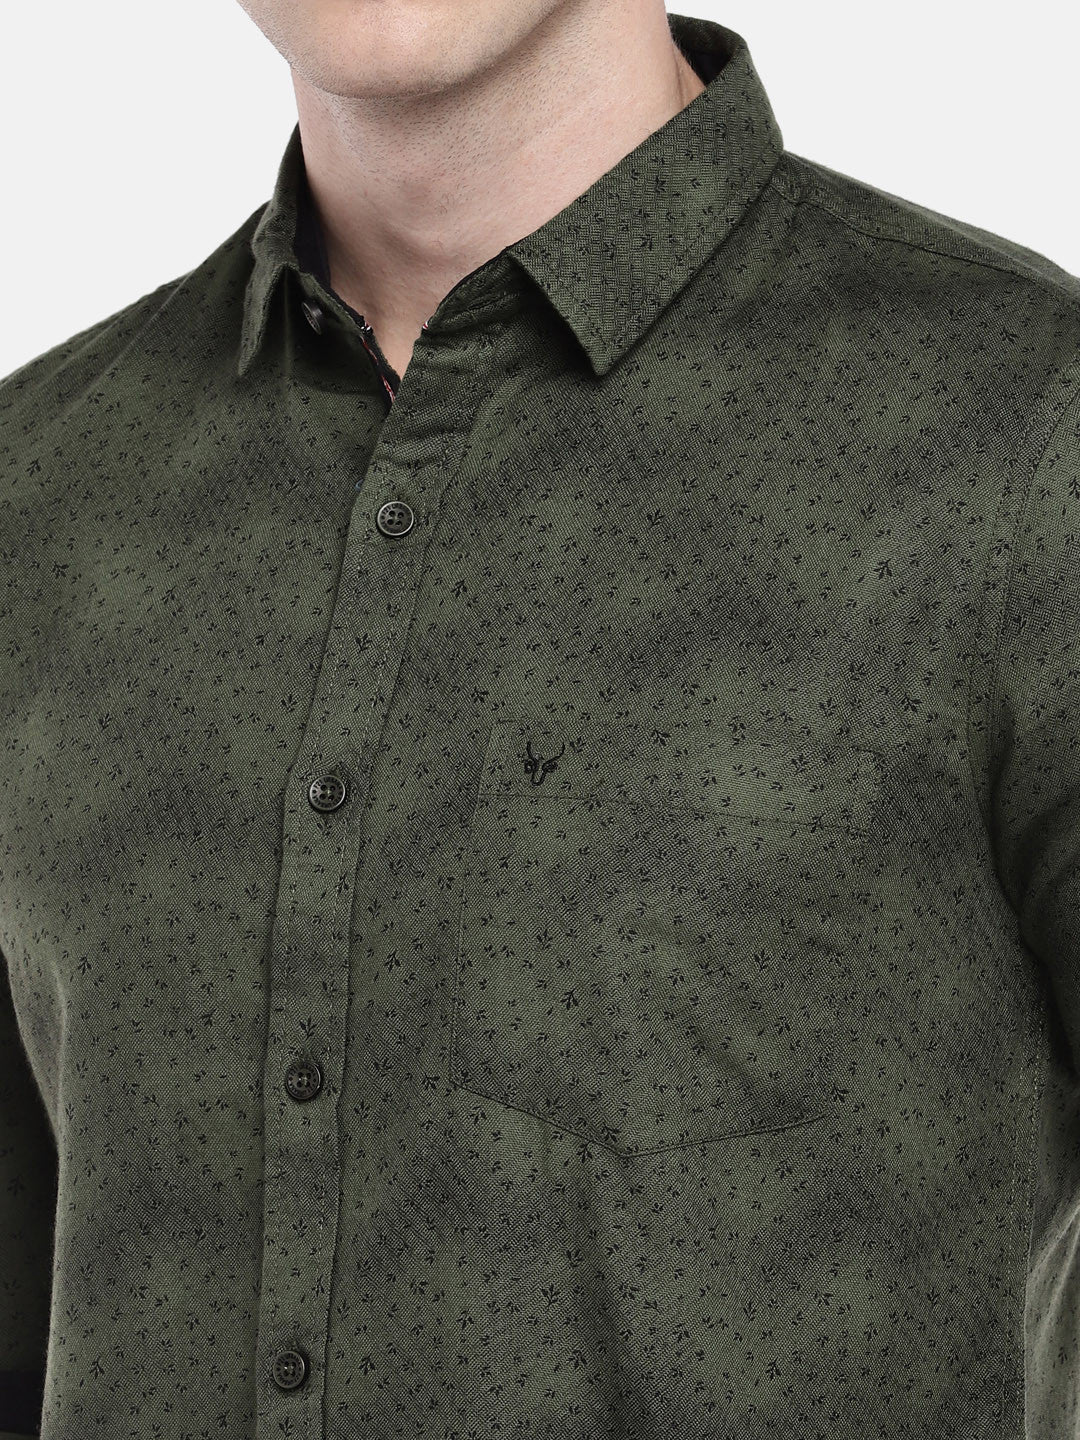 Olive Green Regular Fit Printed Casual Shirt-5